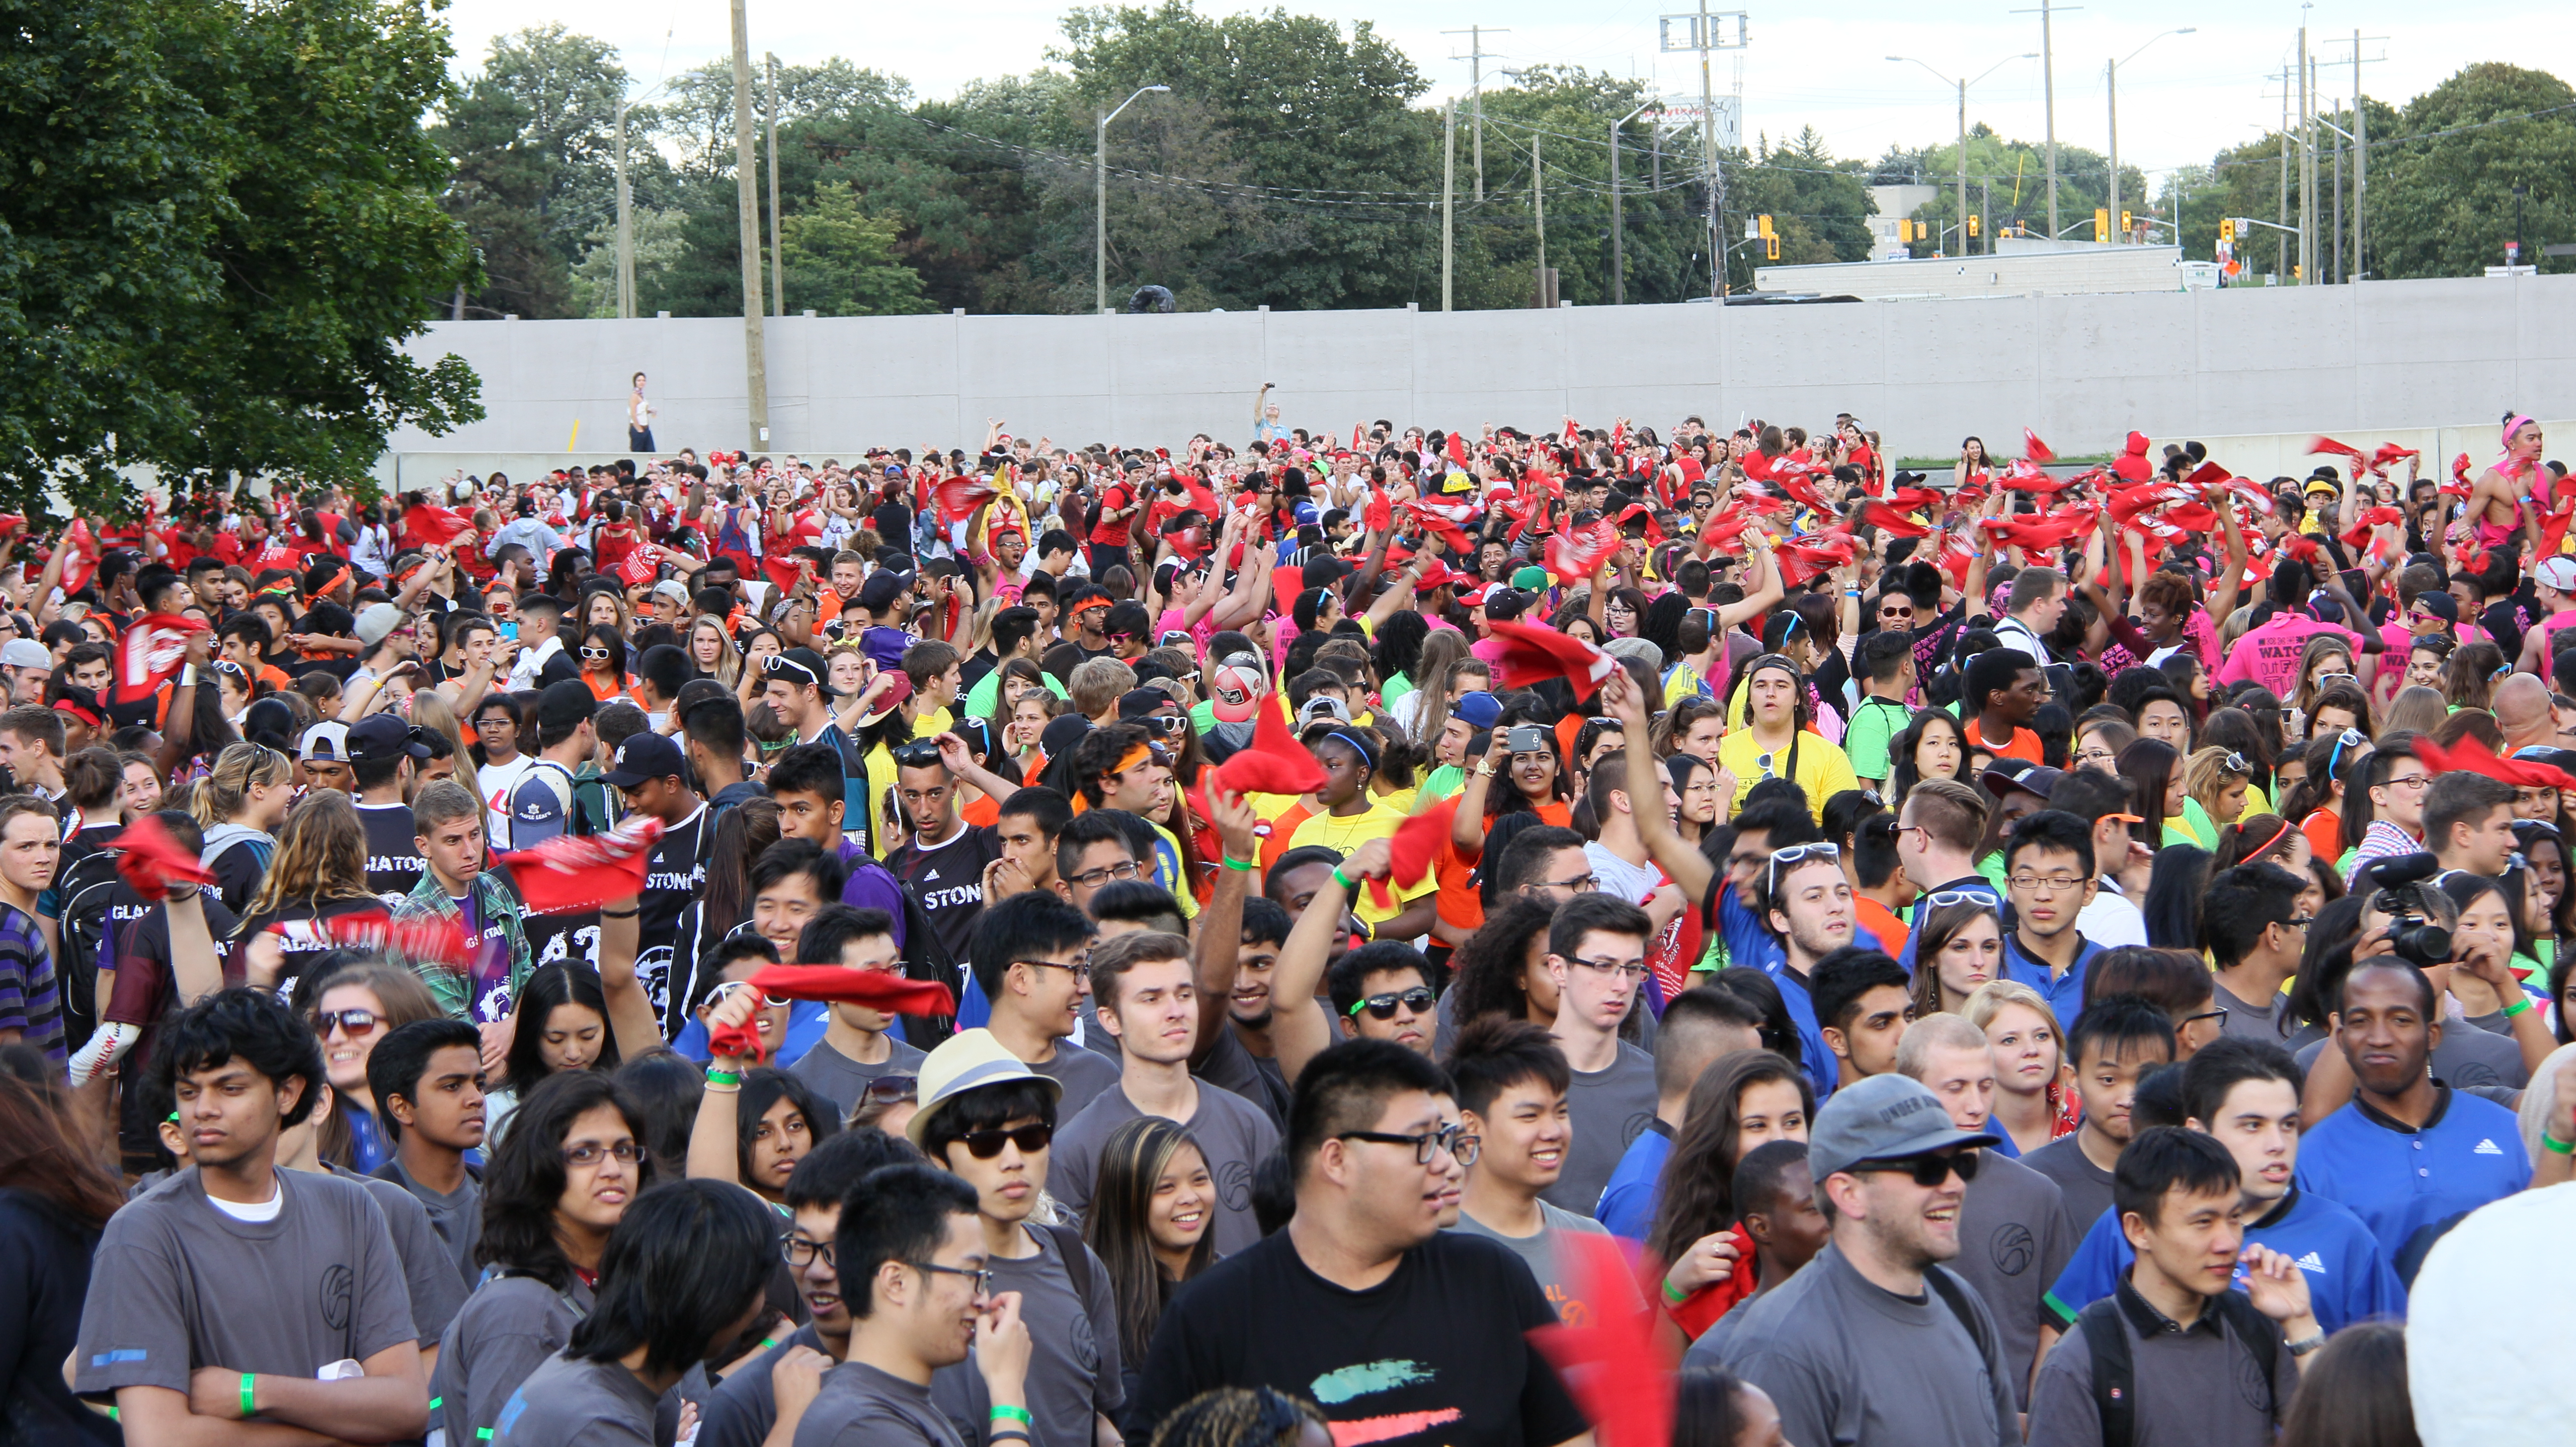 Look at all those colourful O-Week Tees!